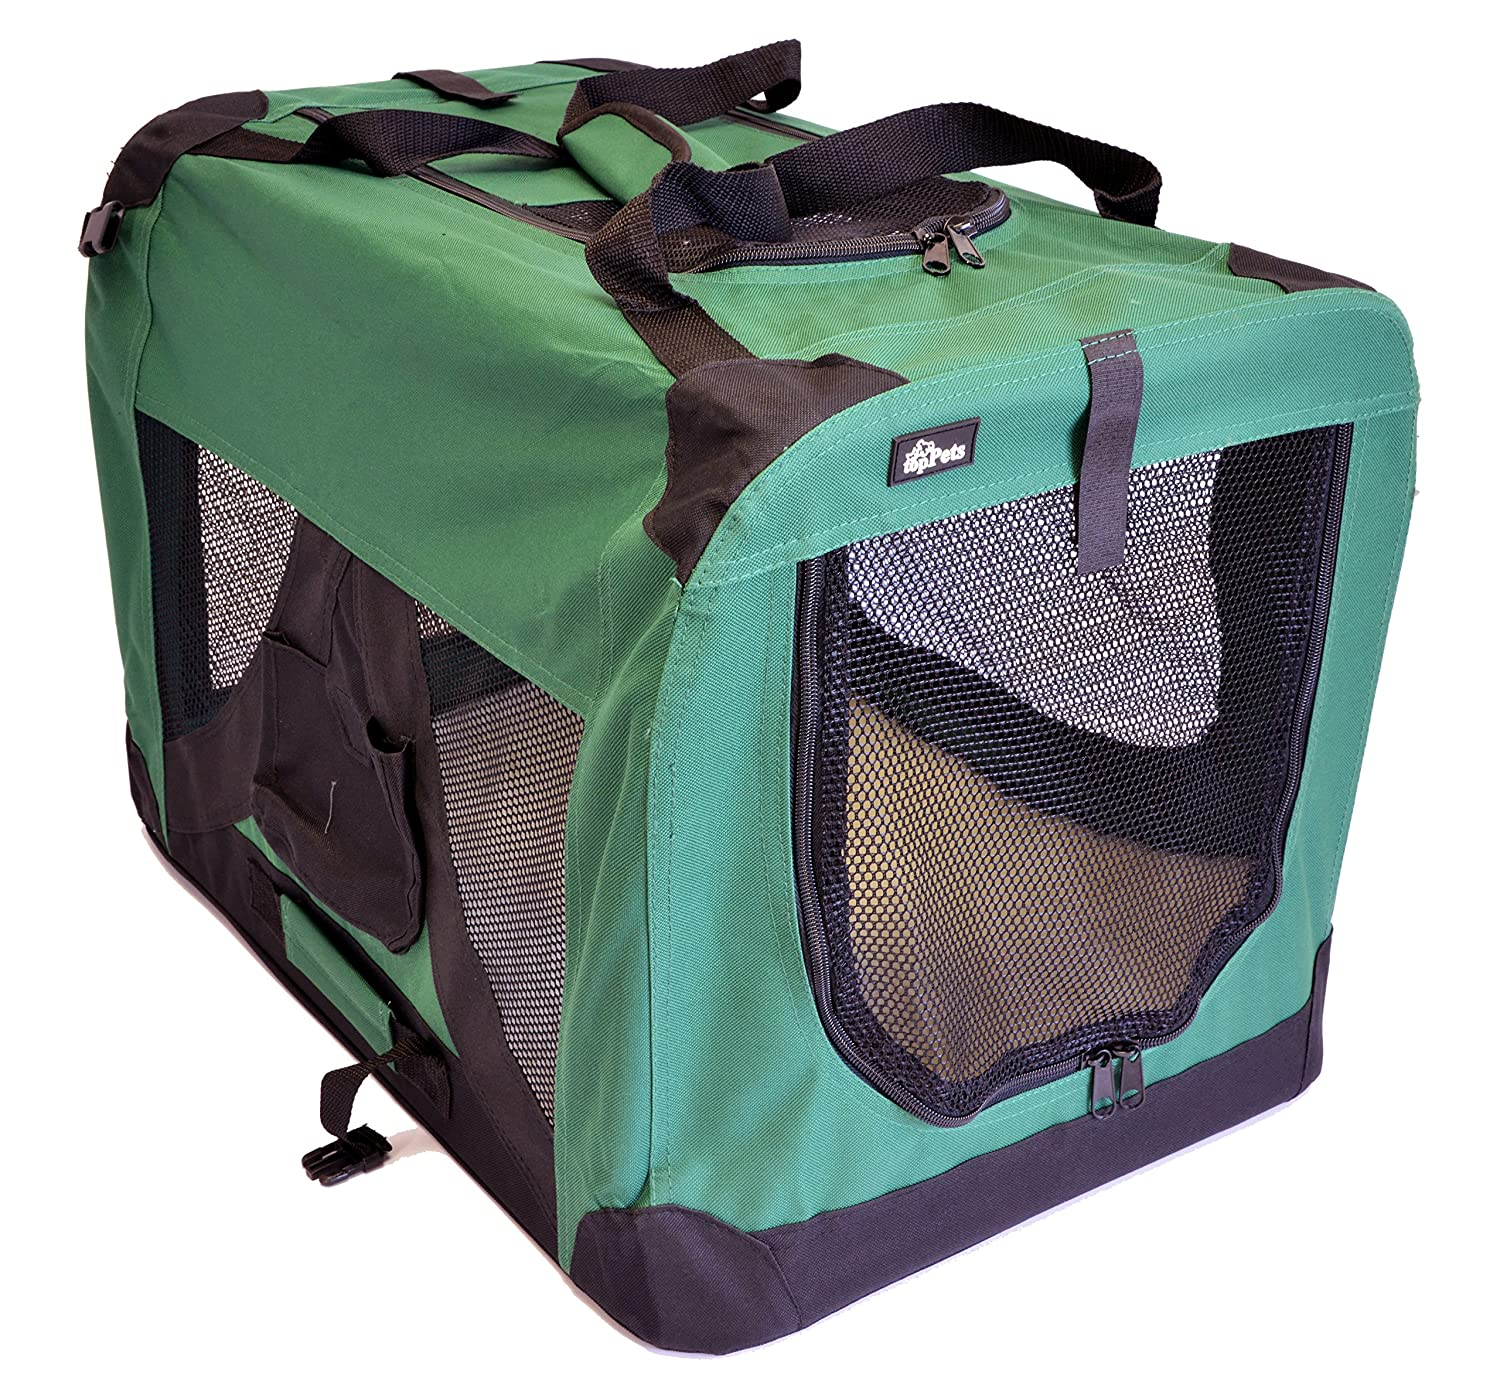 topPets Portable Soft Pet Crate or Kennel for Dog, Cat, or other small pets. Great for Indoor and Outdoor